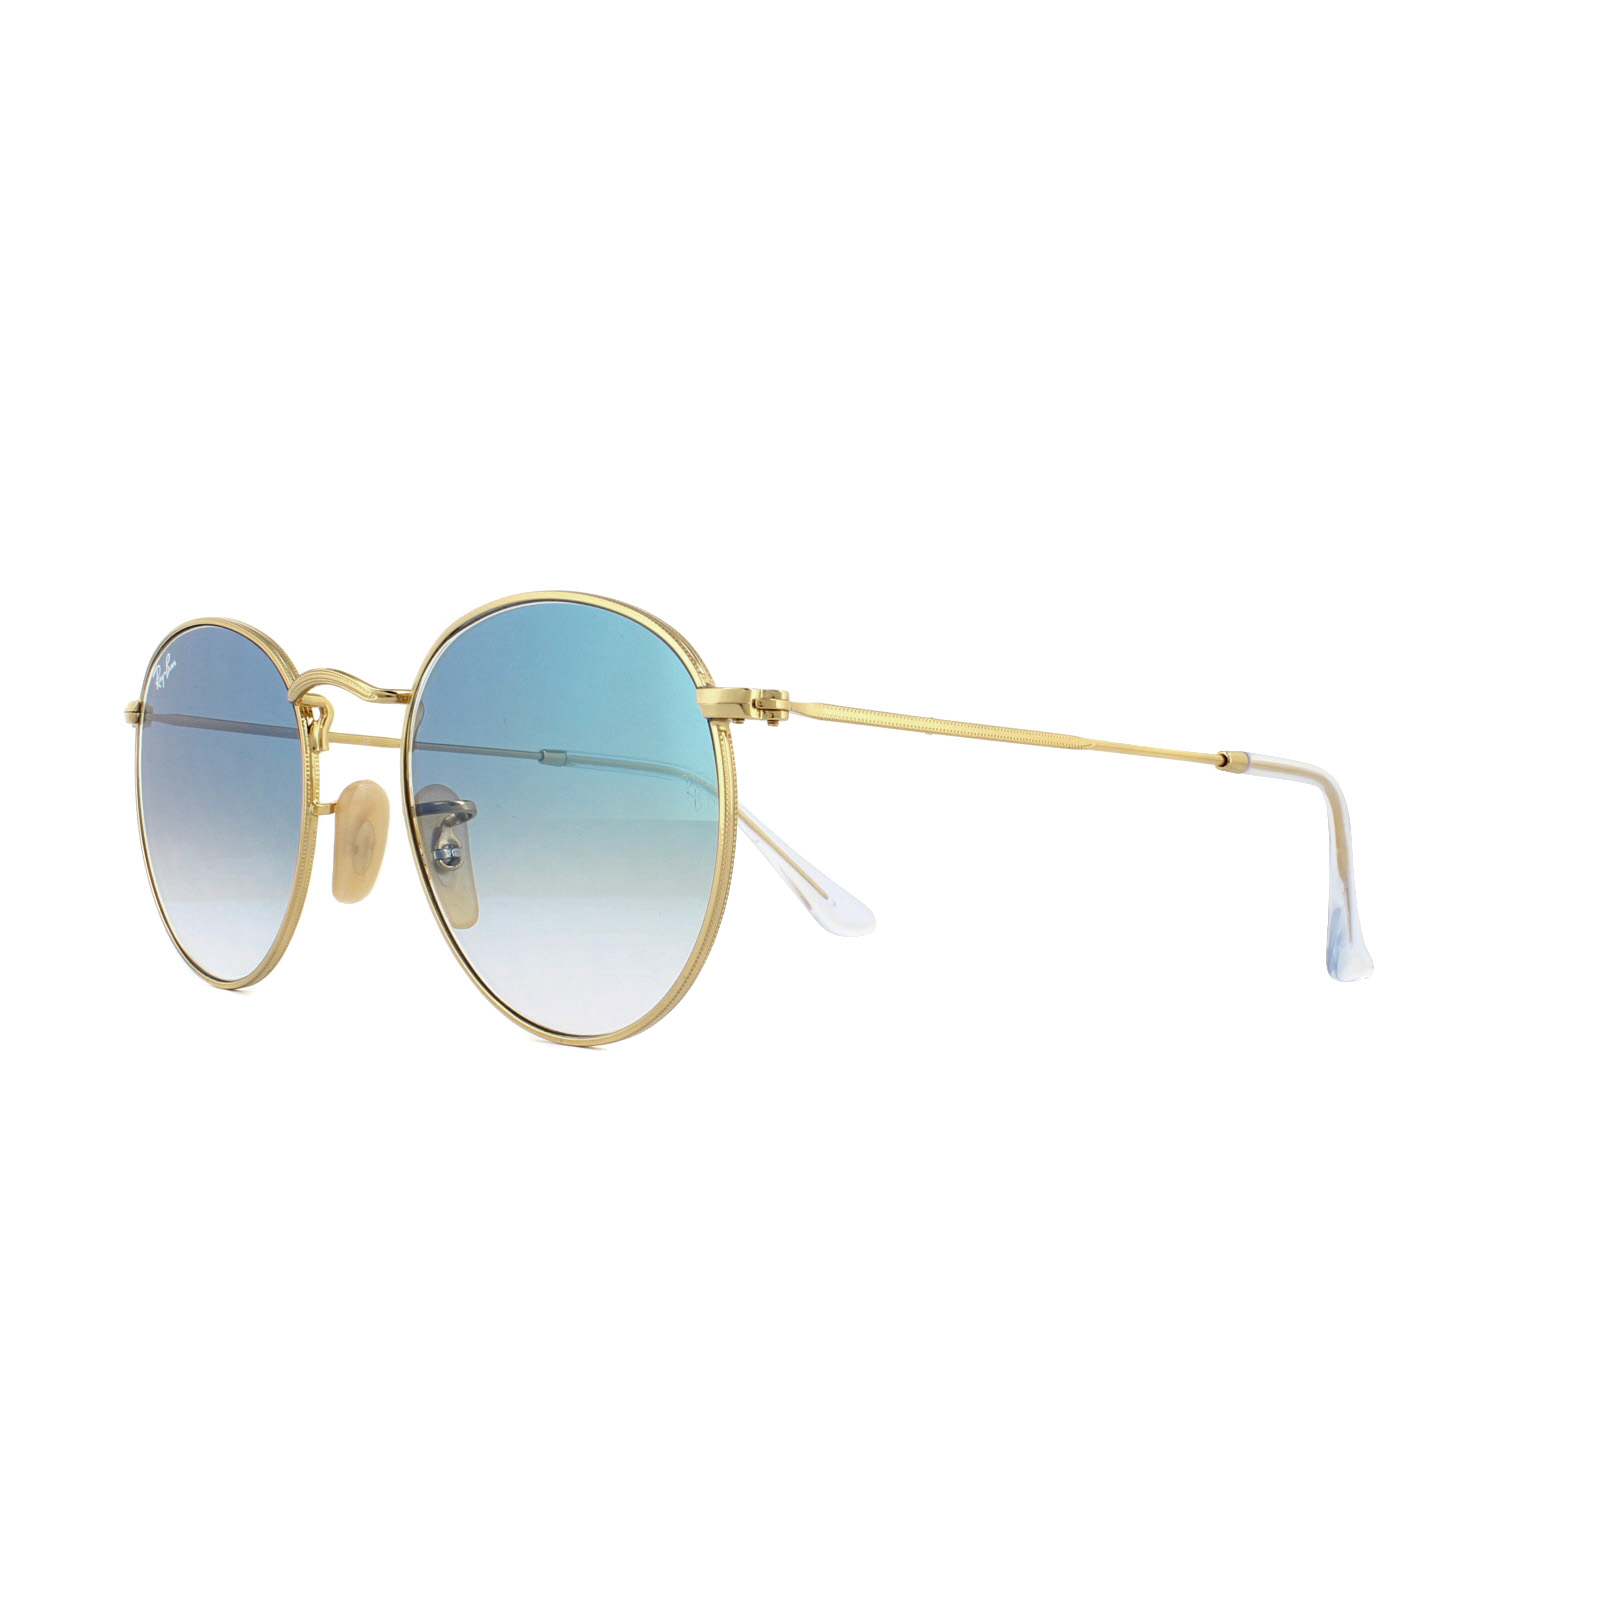 45c95759f32 Sentinel Ray-Ban Sunglasses Round Flat Lenses 3447N 001 3F Gold Blue  Gradient 50mm